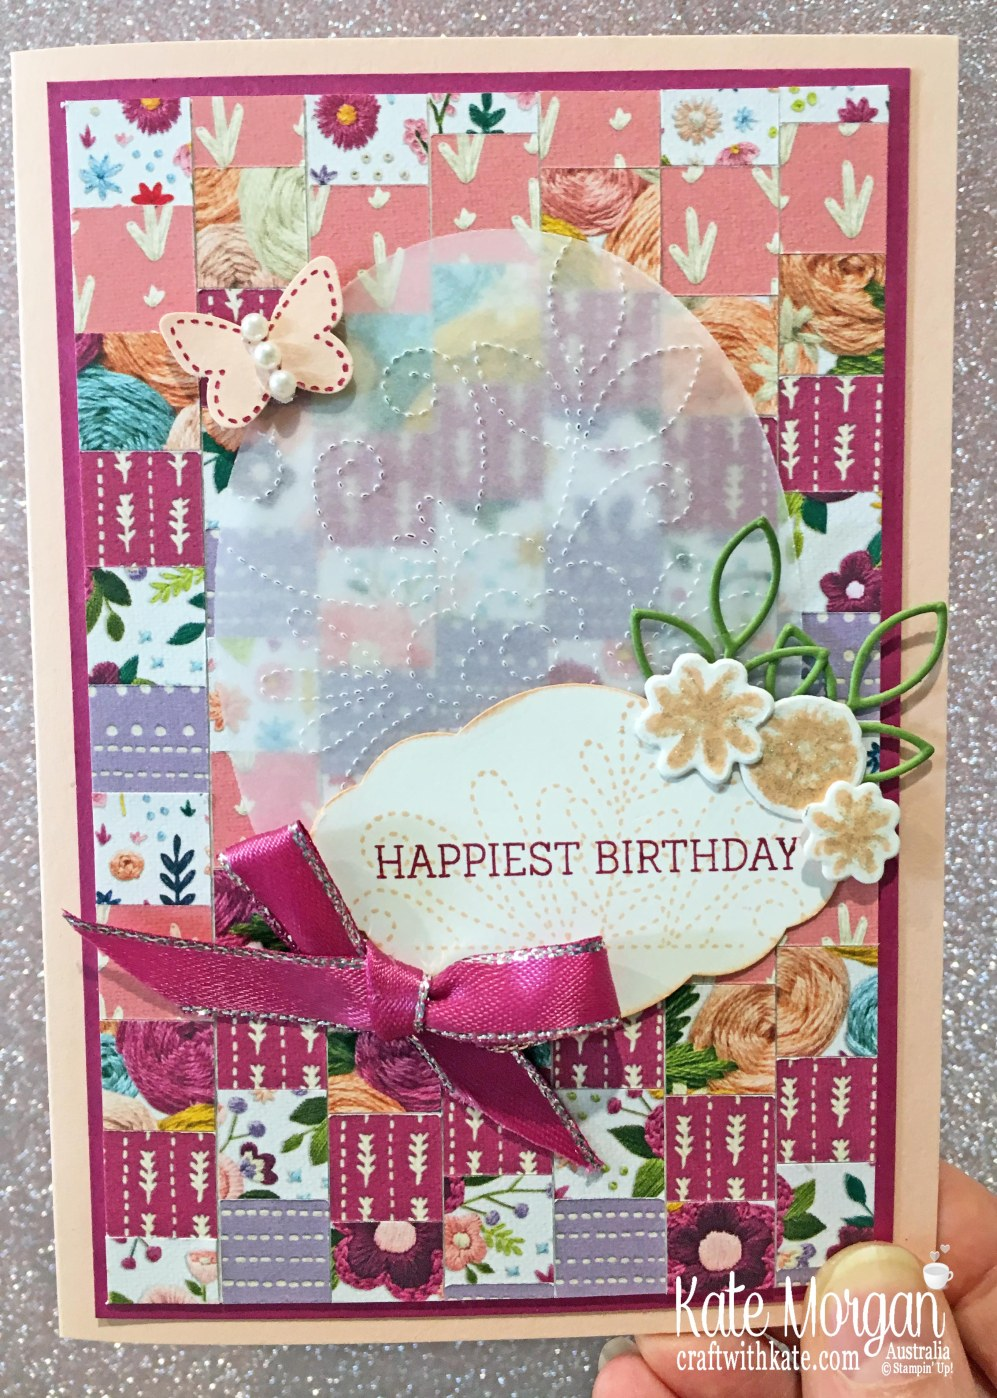 Needlepoint Nook Suite Stampin Up Bargello Technique by Kate Morgan Australia, Occasions 2019.JPG